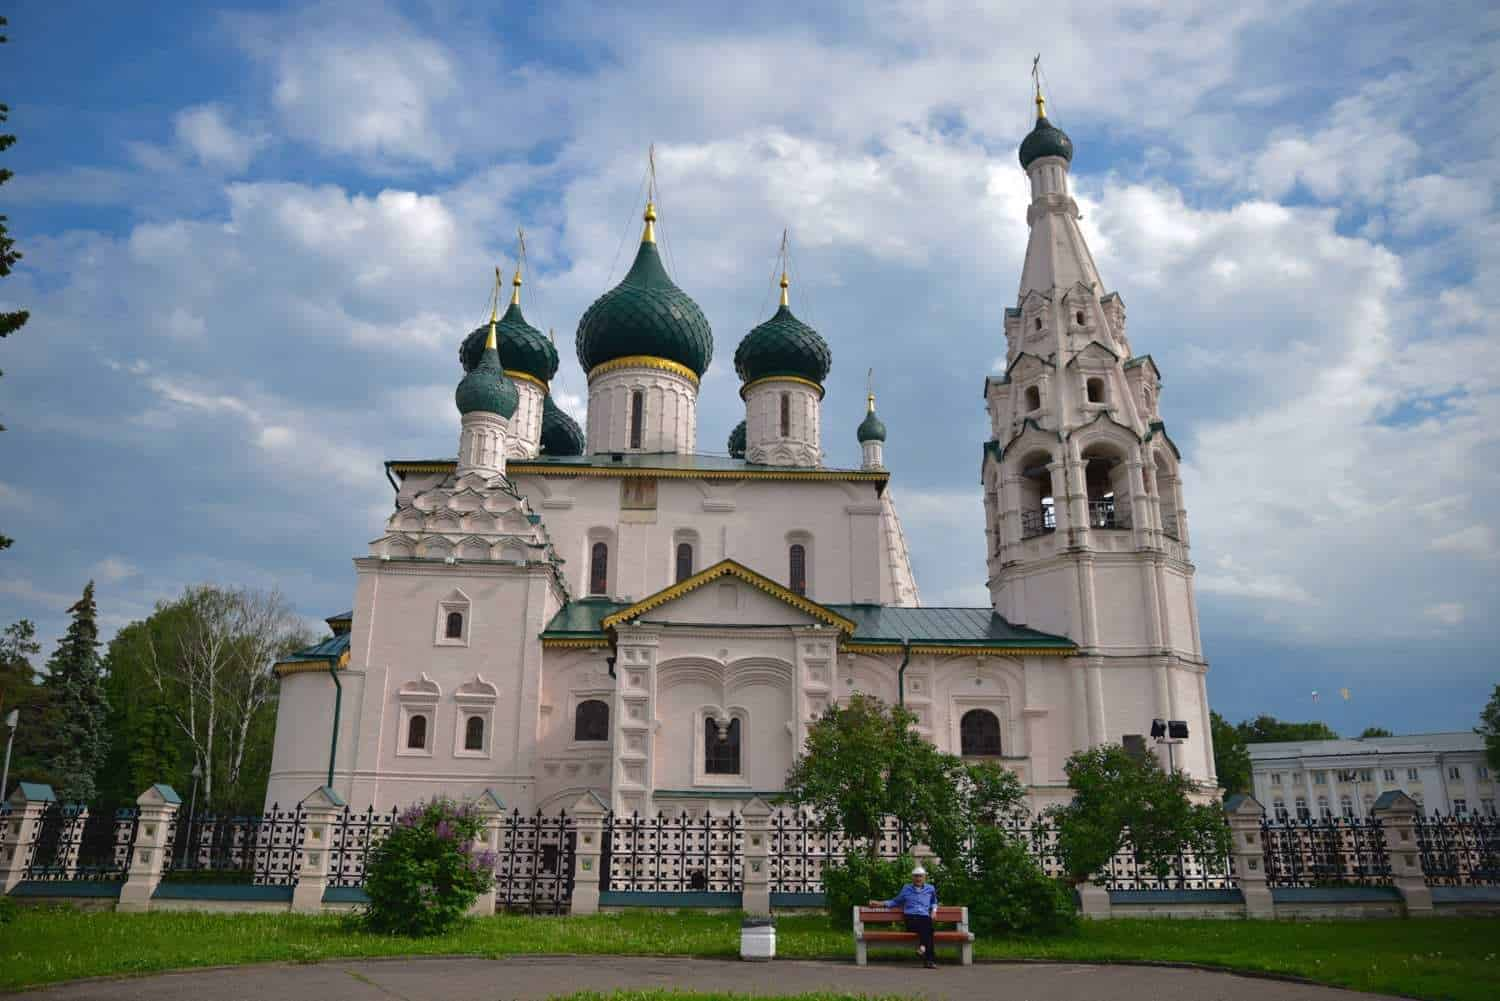 white church with gold topped green parapets in Yaroslavl Russia. these are the amazing things you will see on a viking river cruise st petersburg to moscow